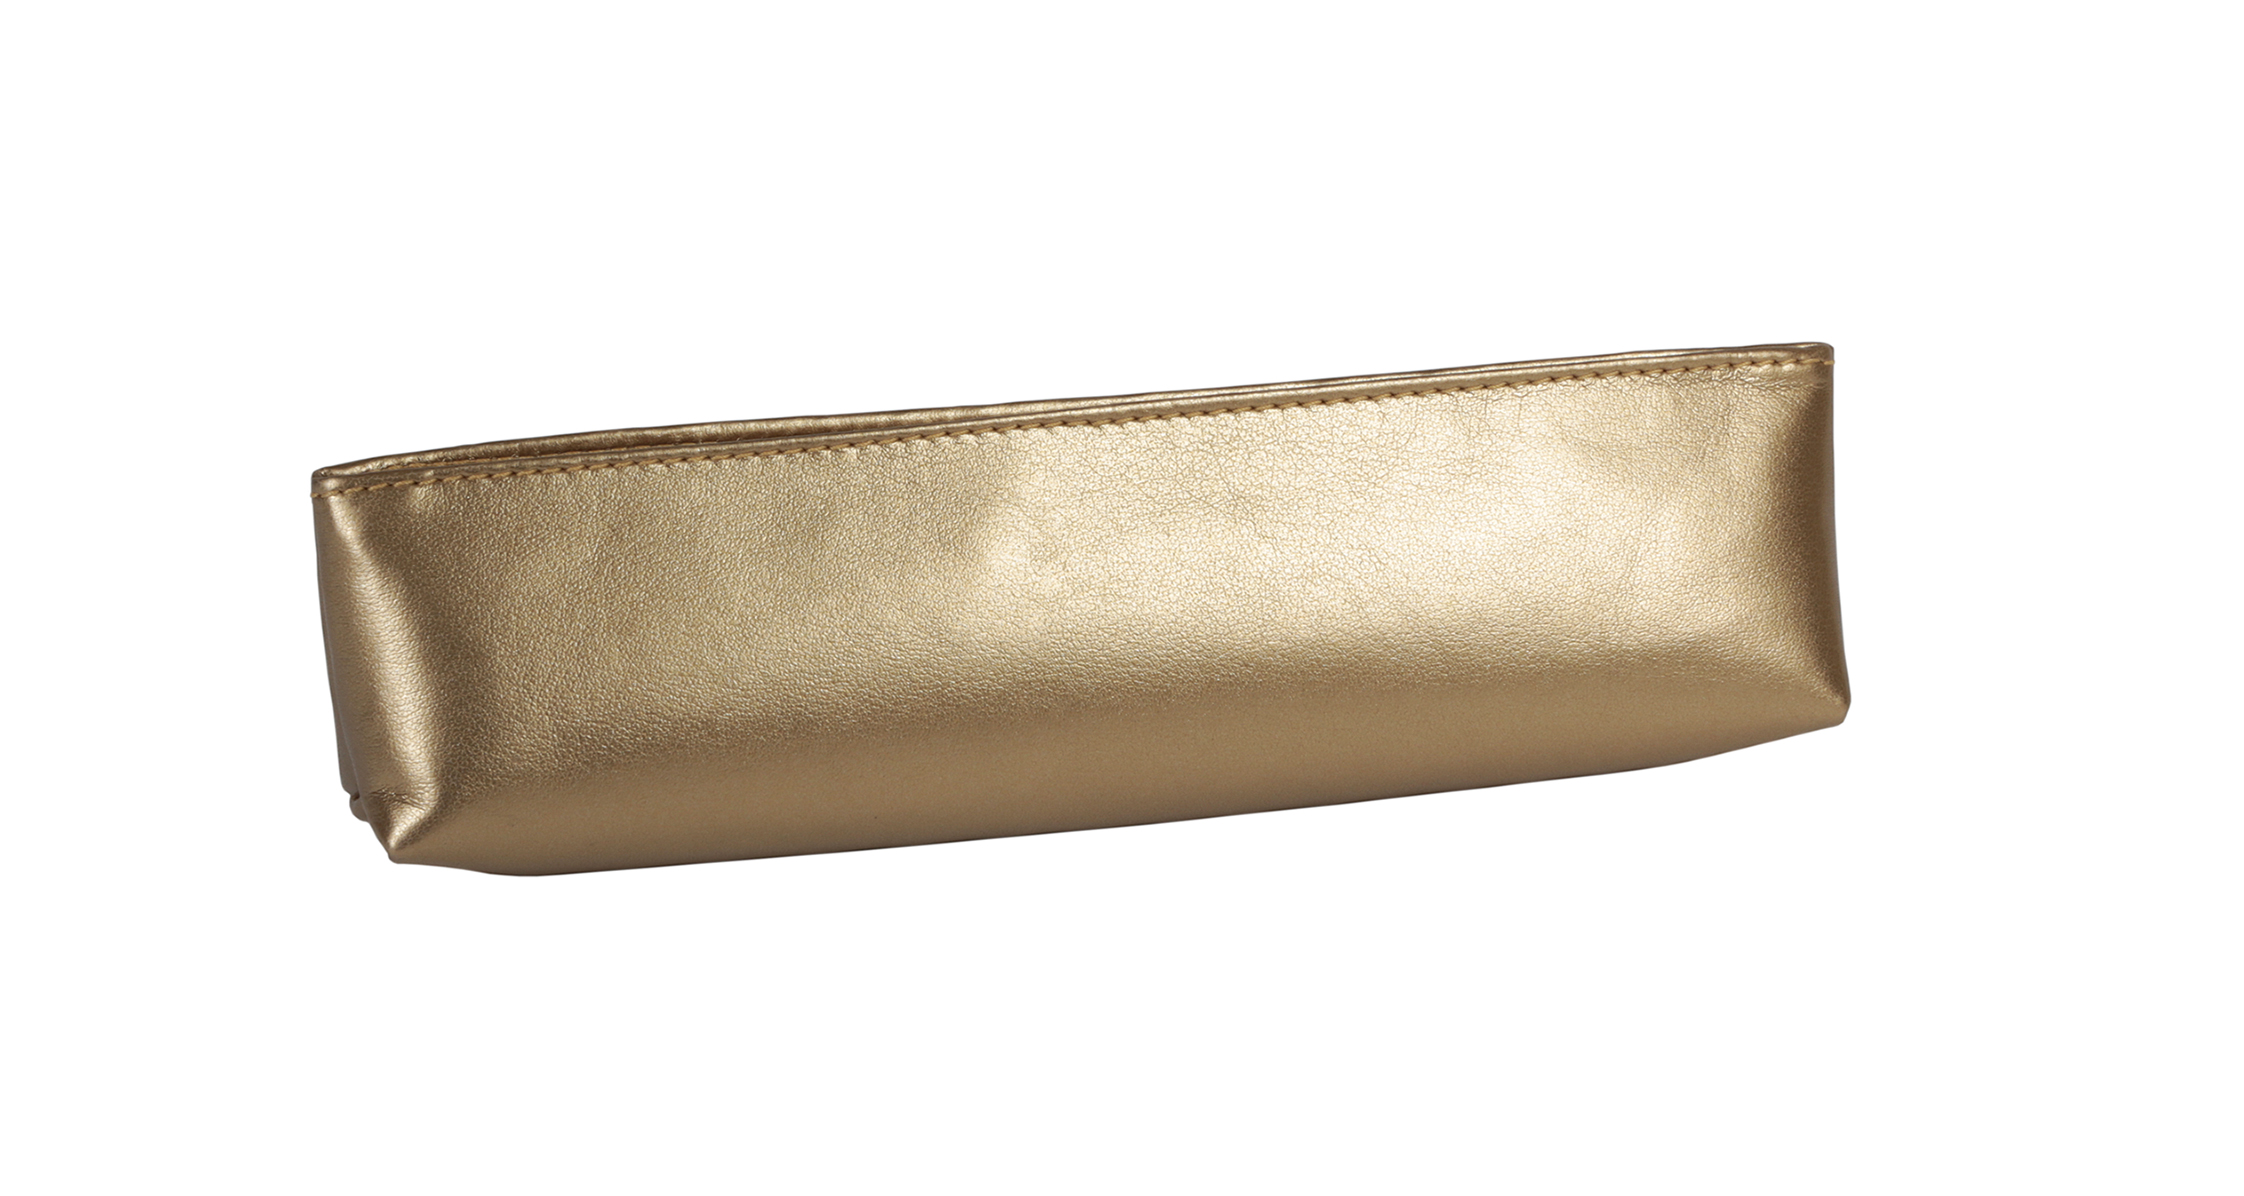 A4104-G - GOLD Pencil/Accessory Pouch with Zipper